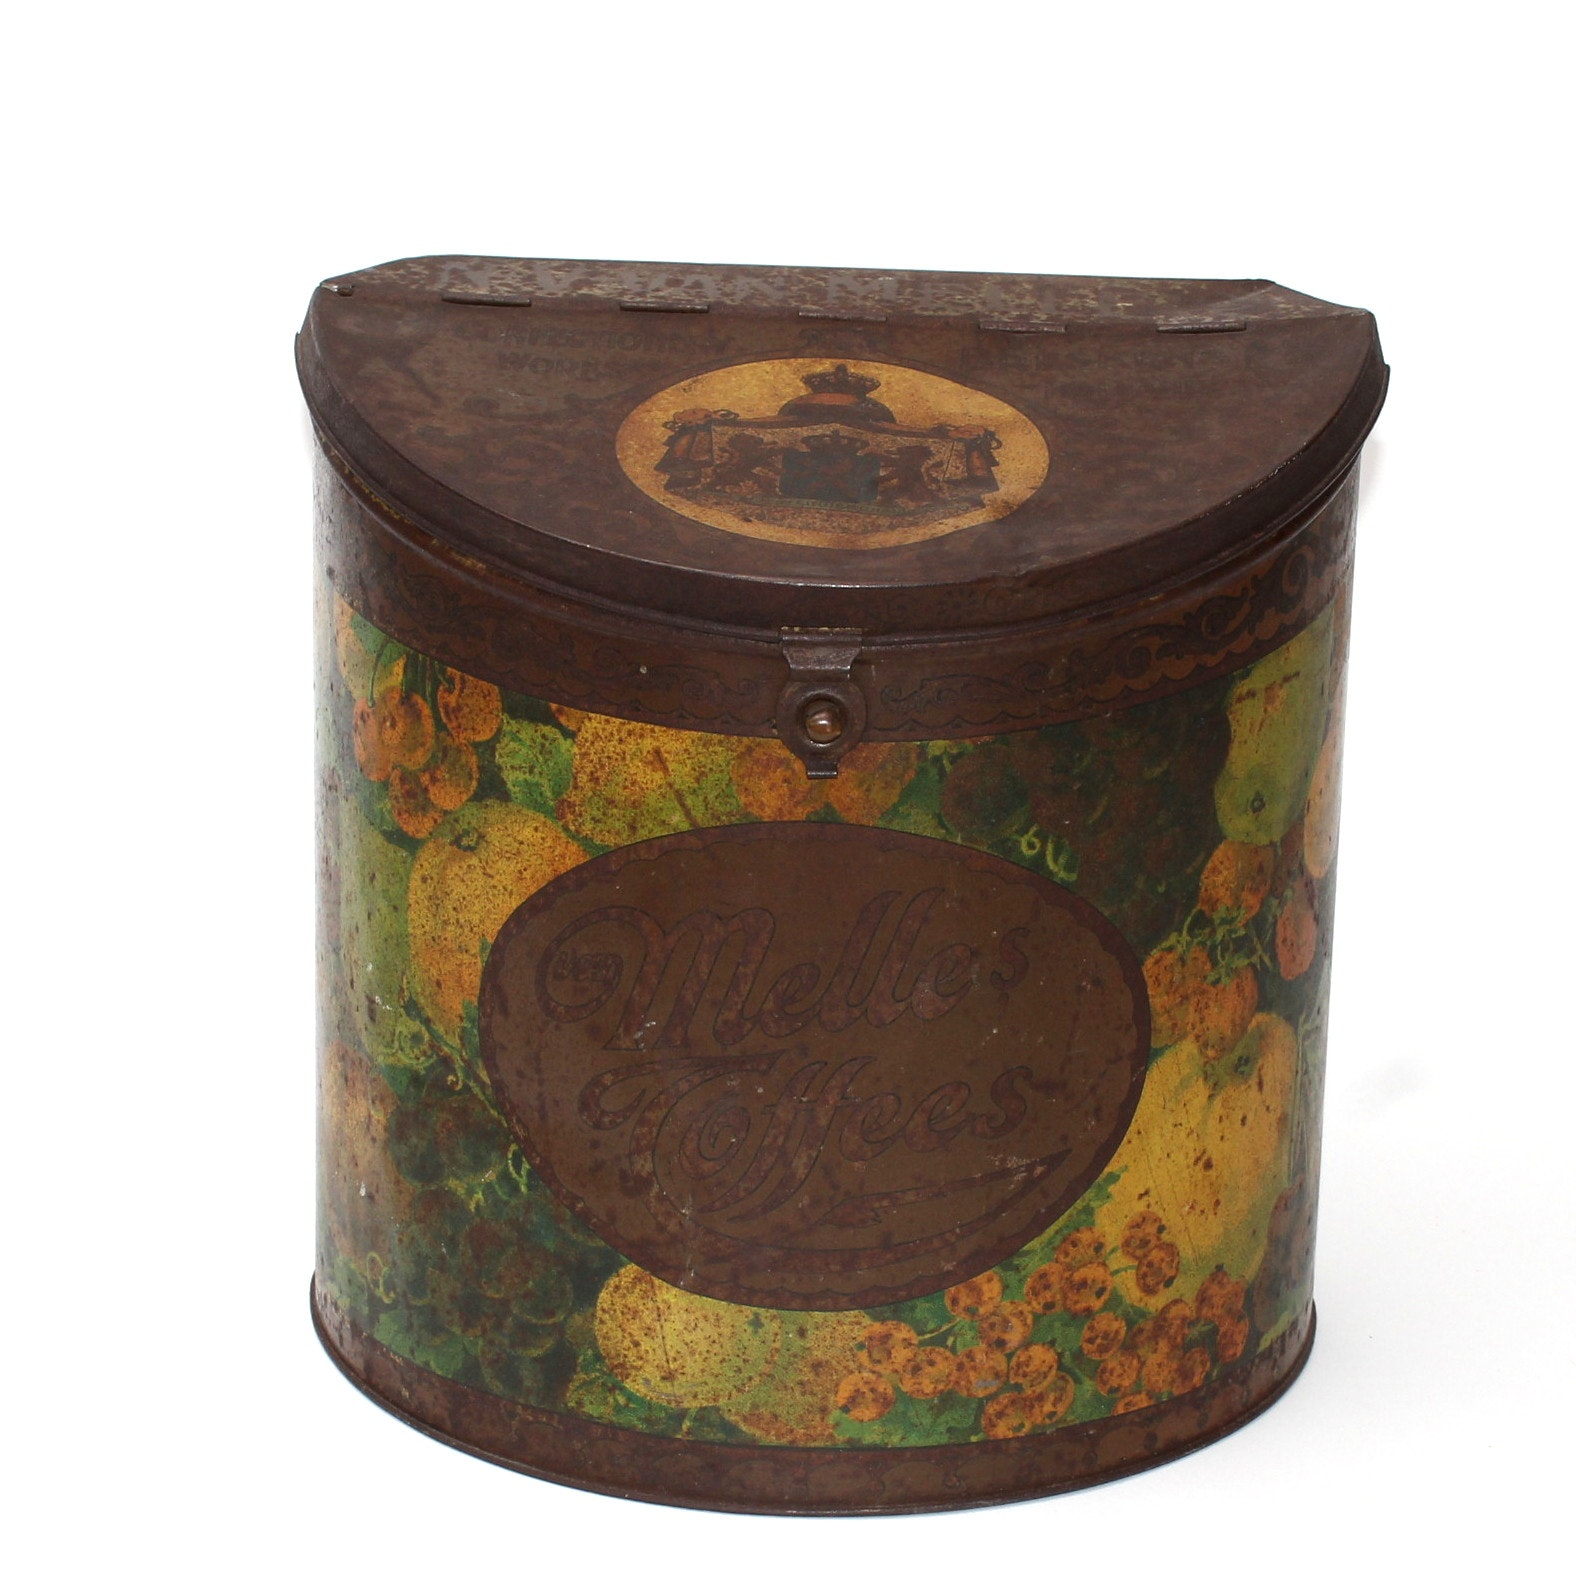 Antique Hand-Painted Van Melle's Toffee Tin